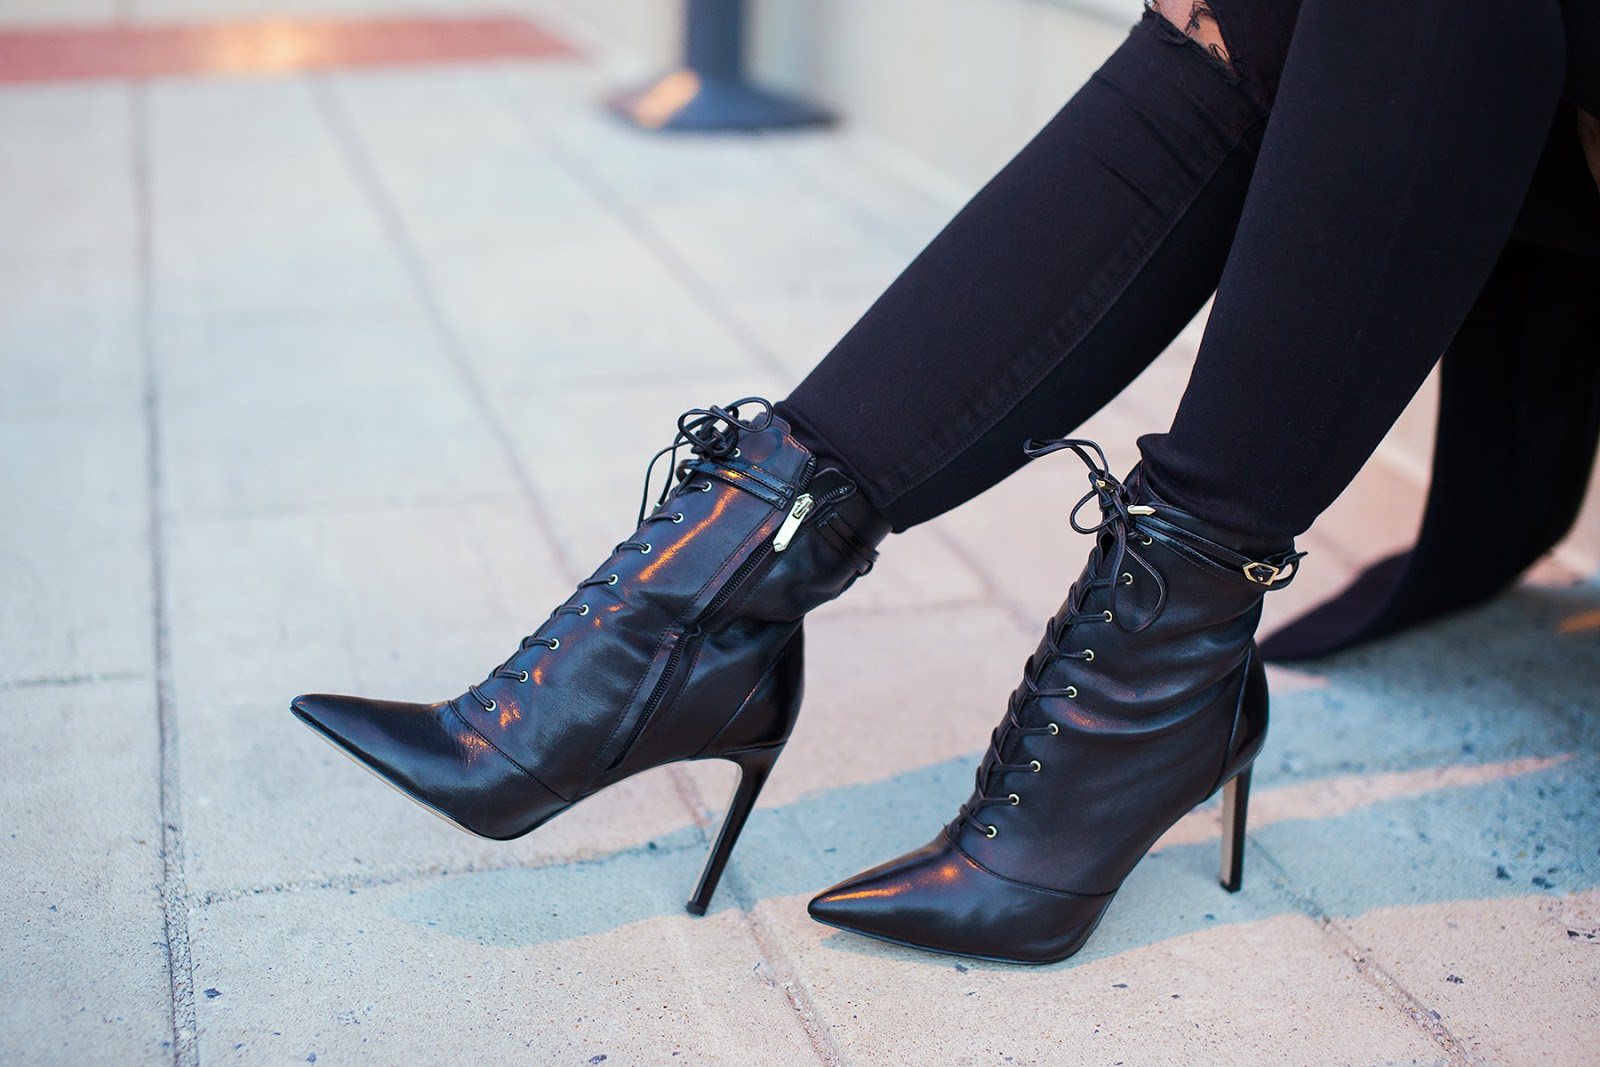 Sam edelman Bryton leather ankle boots, www.jadore-fashion.com